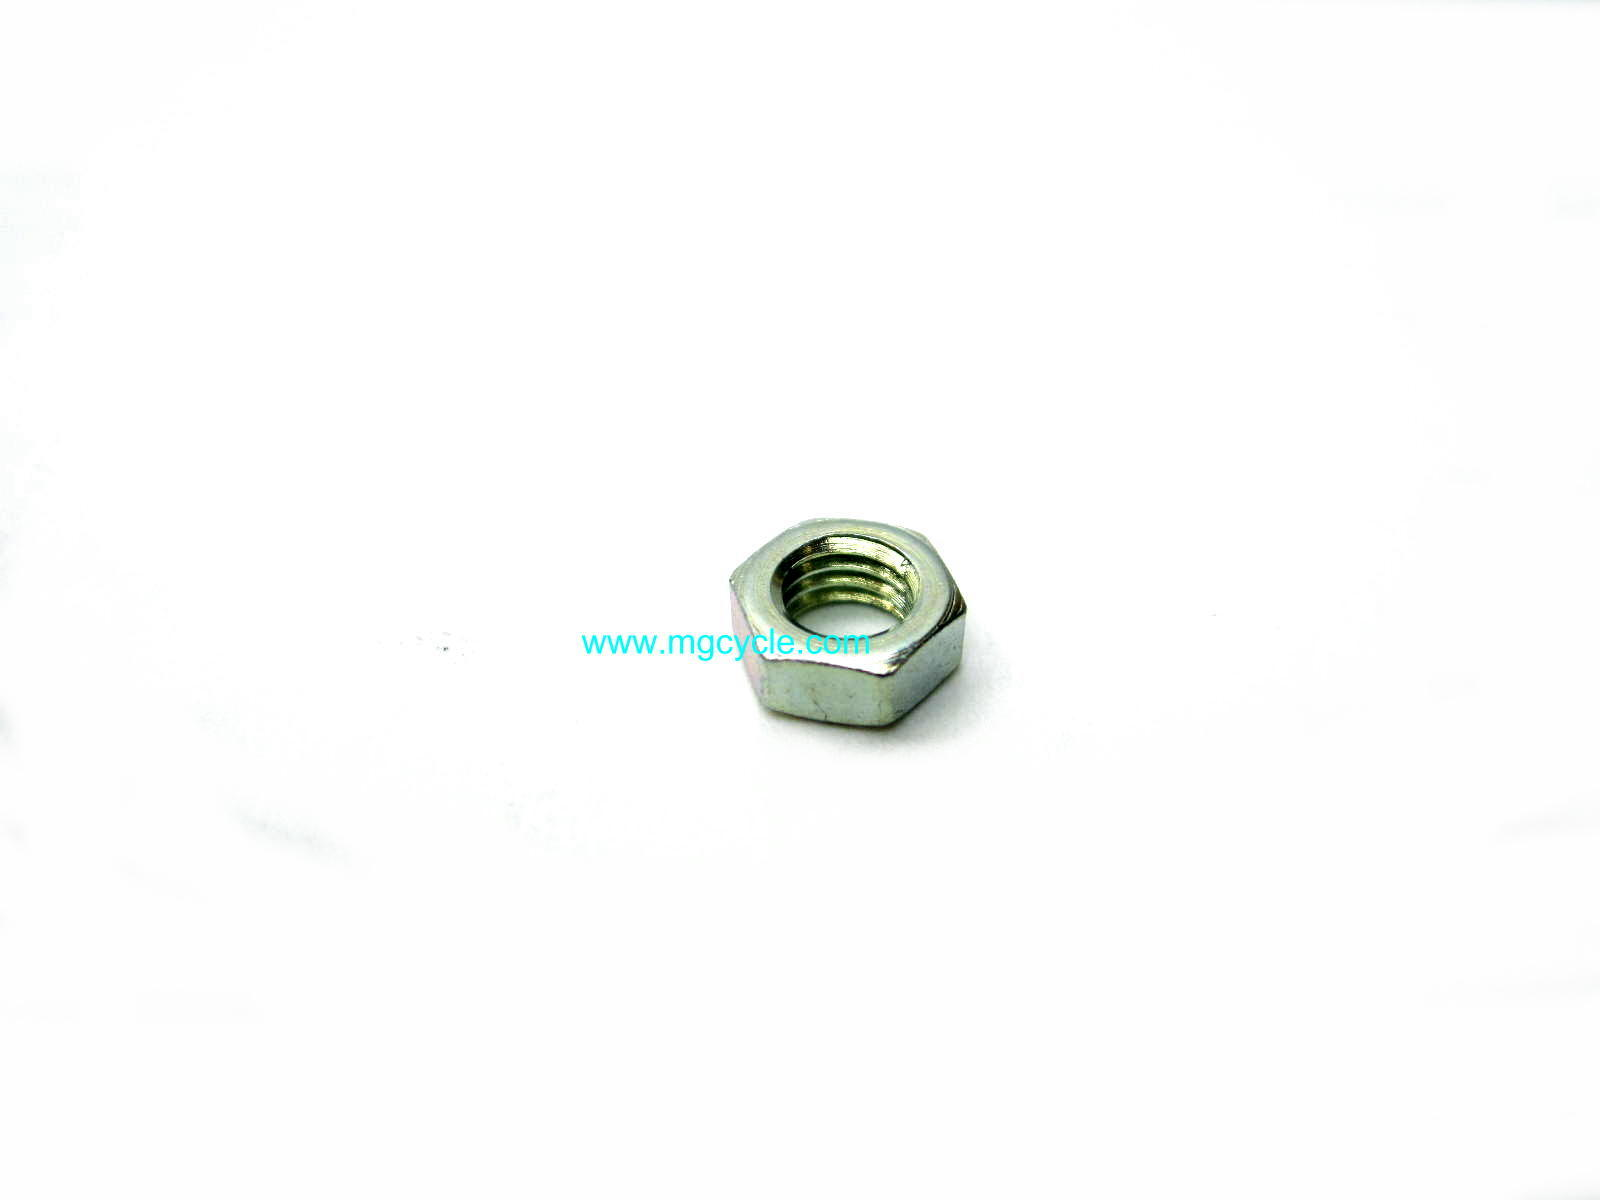 Dellorto 1692 cable adjuster lock nut, PHF PHM, ~5mm ID